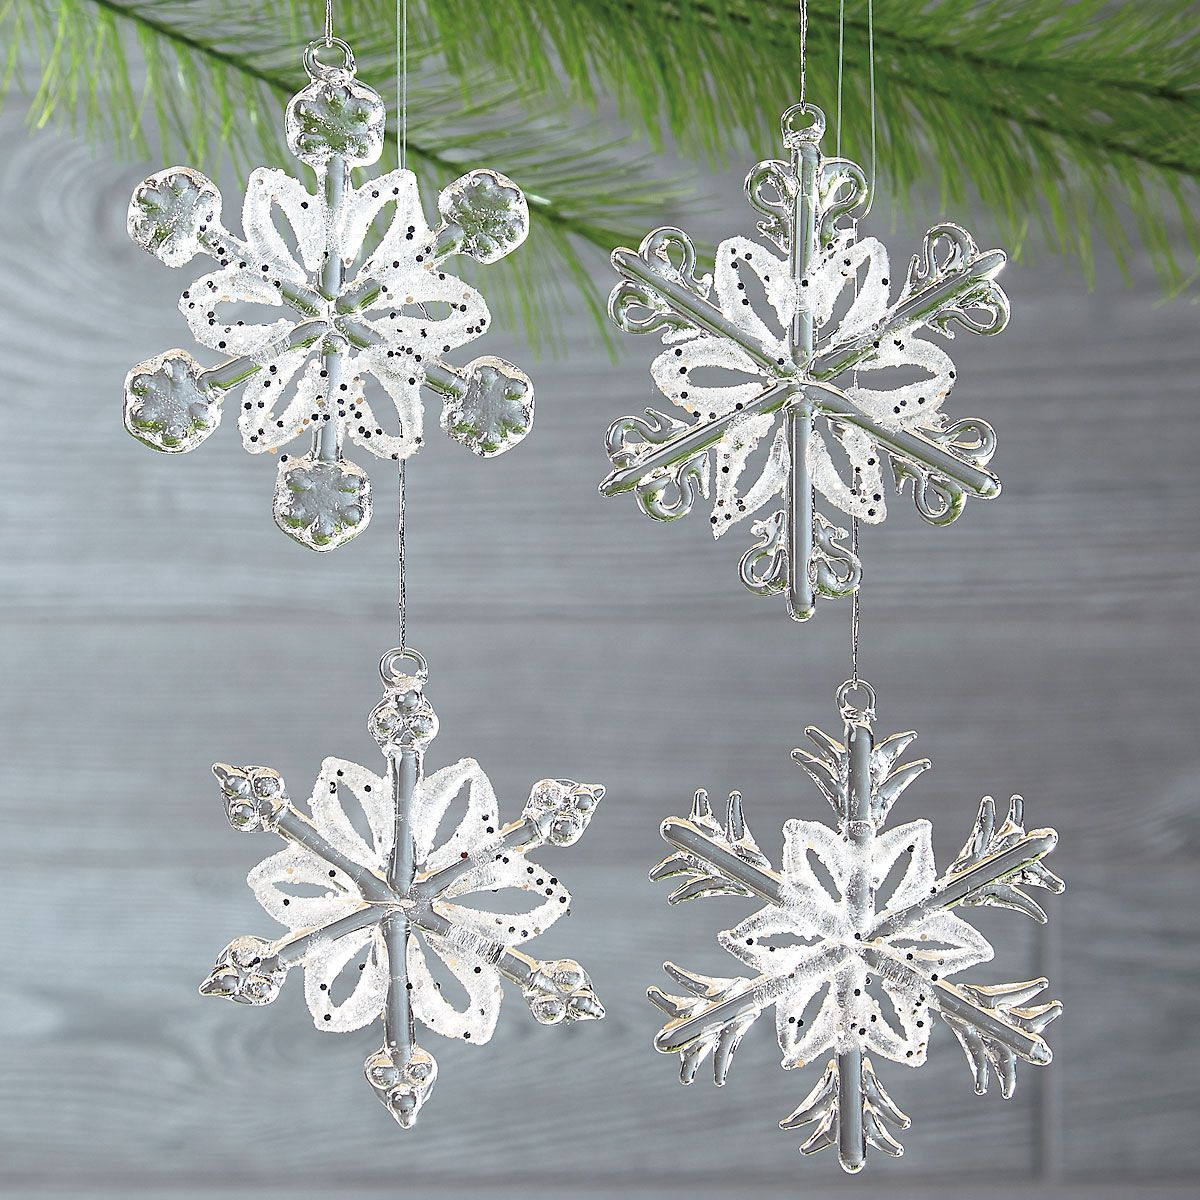 Glass Snowflake Ornaments | Current Catalog